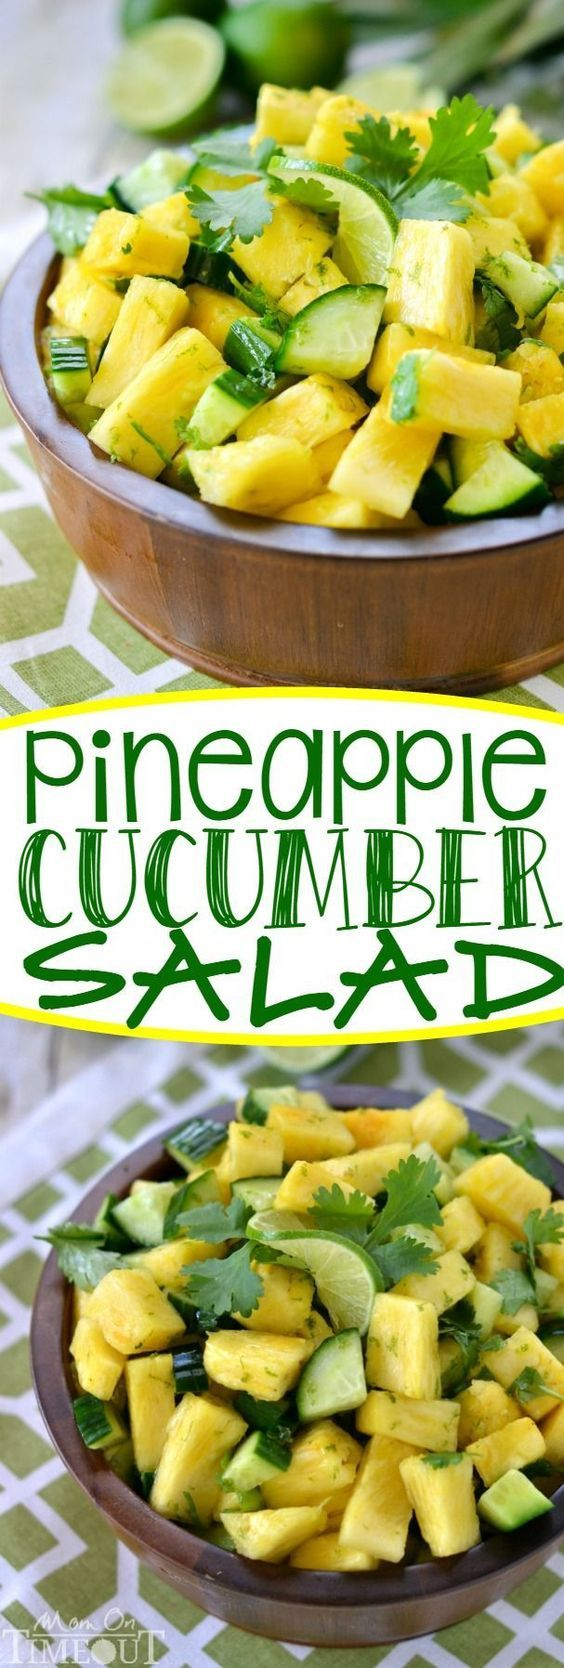 This perfectly refreshing Pineapple Cucumber Salad is wonderfully easy to make and simply delicious! A gorgeous, healthy alternative to dessert! | #HealthyEating #CleanEating #Salads Sherman Financial Group